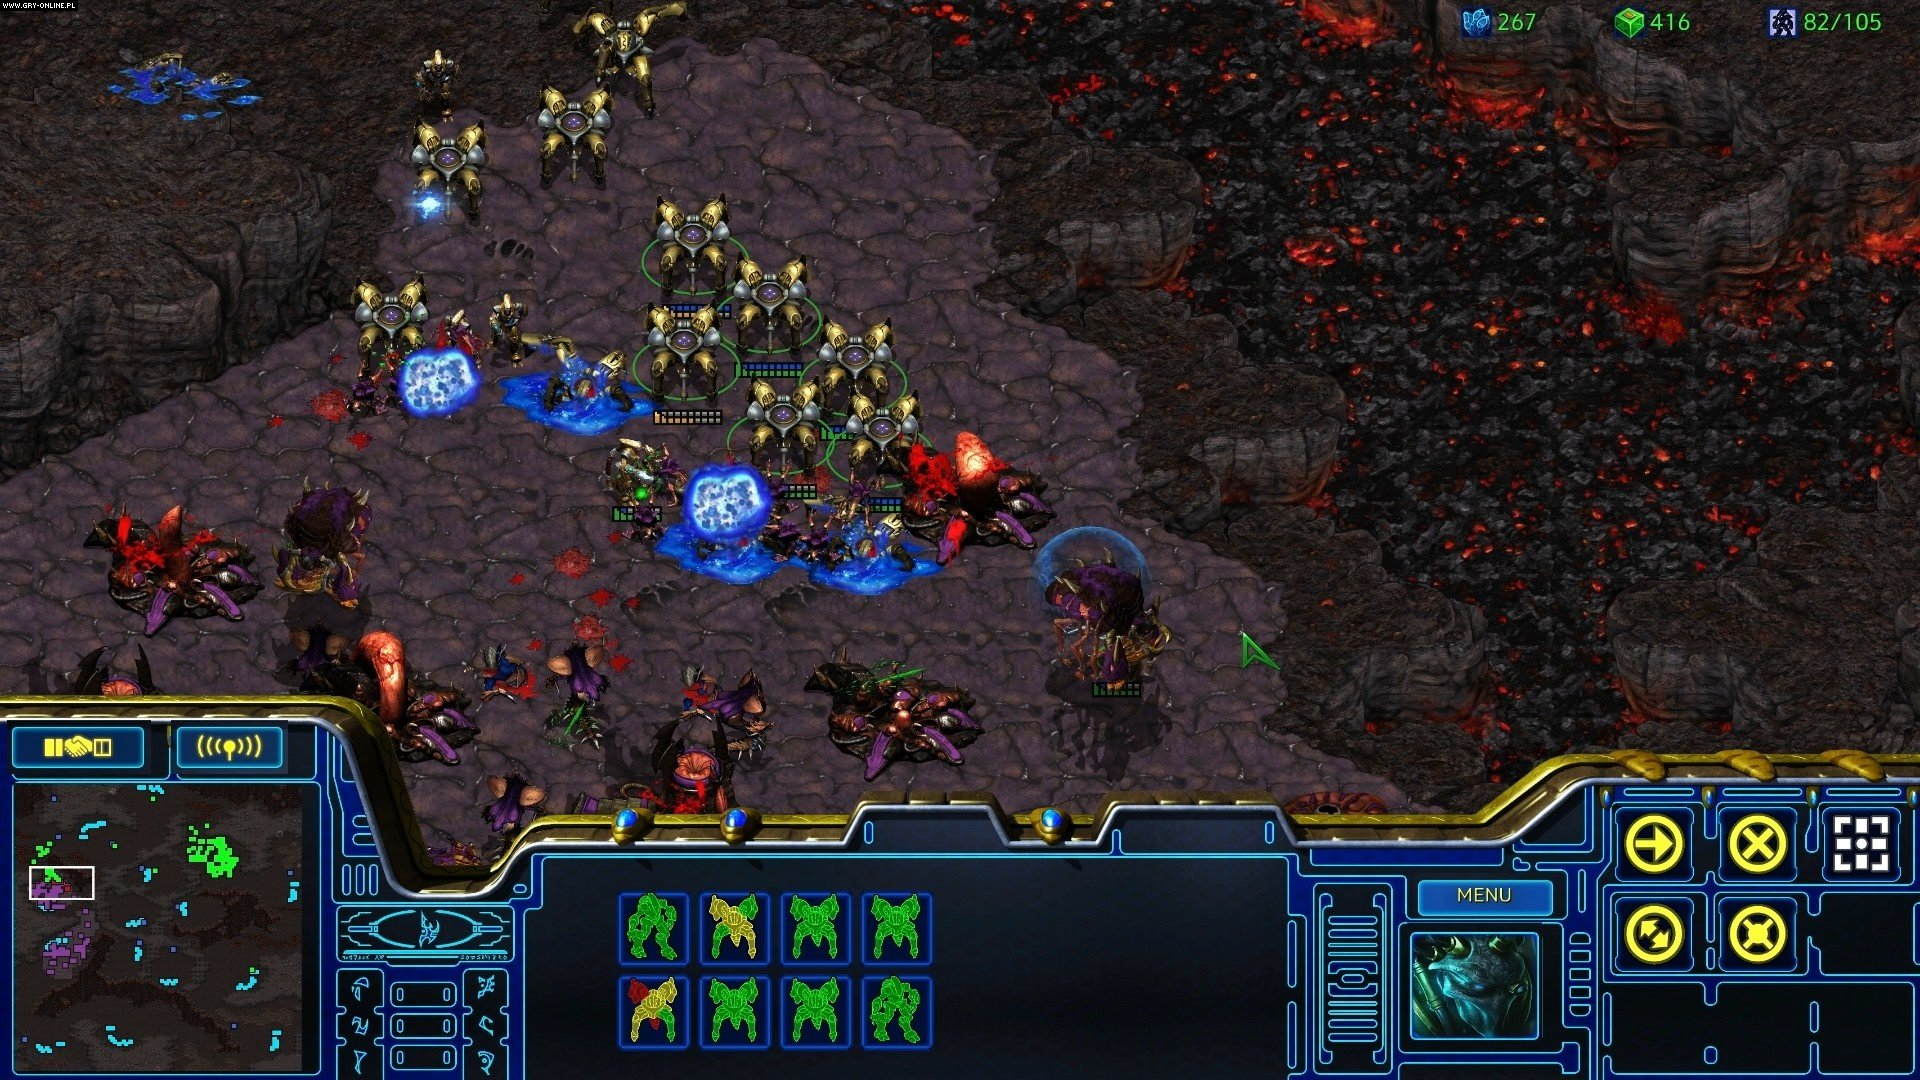 StarCraft: Remastered PC Gry Screen 1/15, Blizzard Entertainment